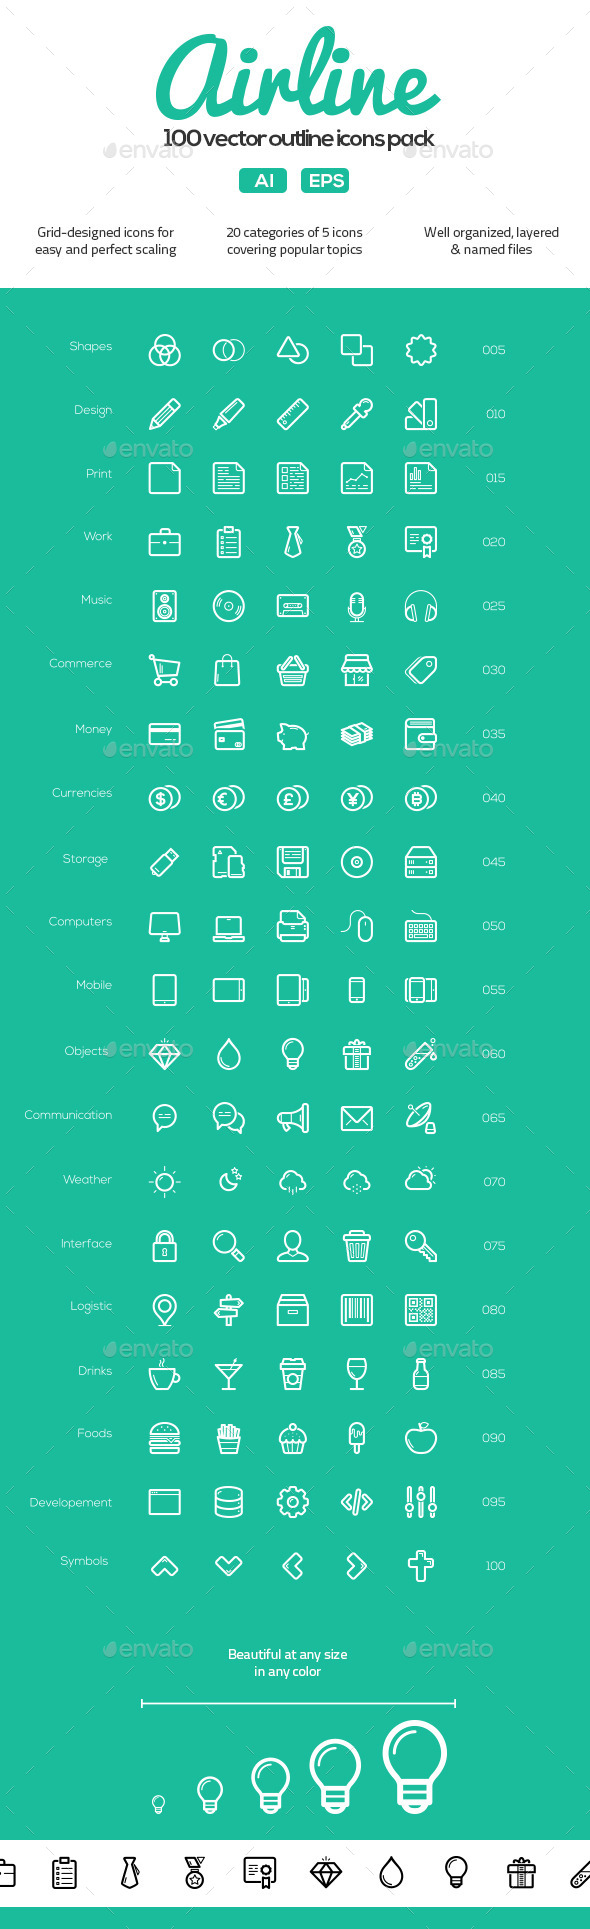 GraphicRiver 100 Vector Outline Icons Pack 10928704